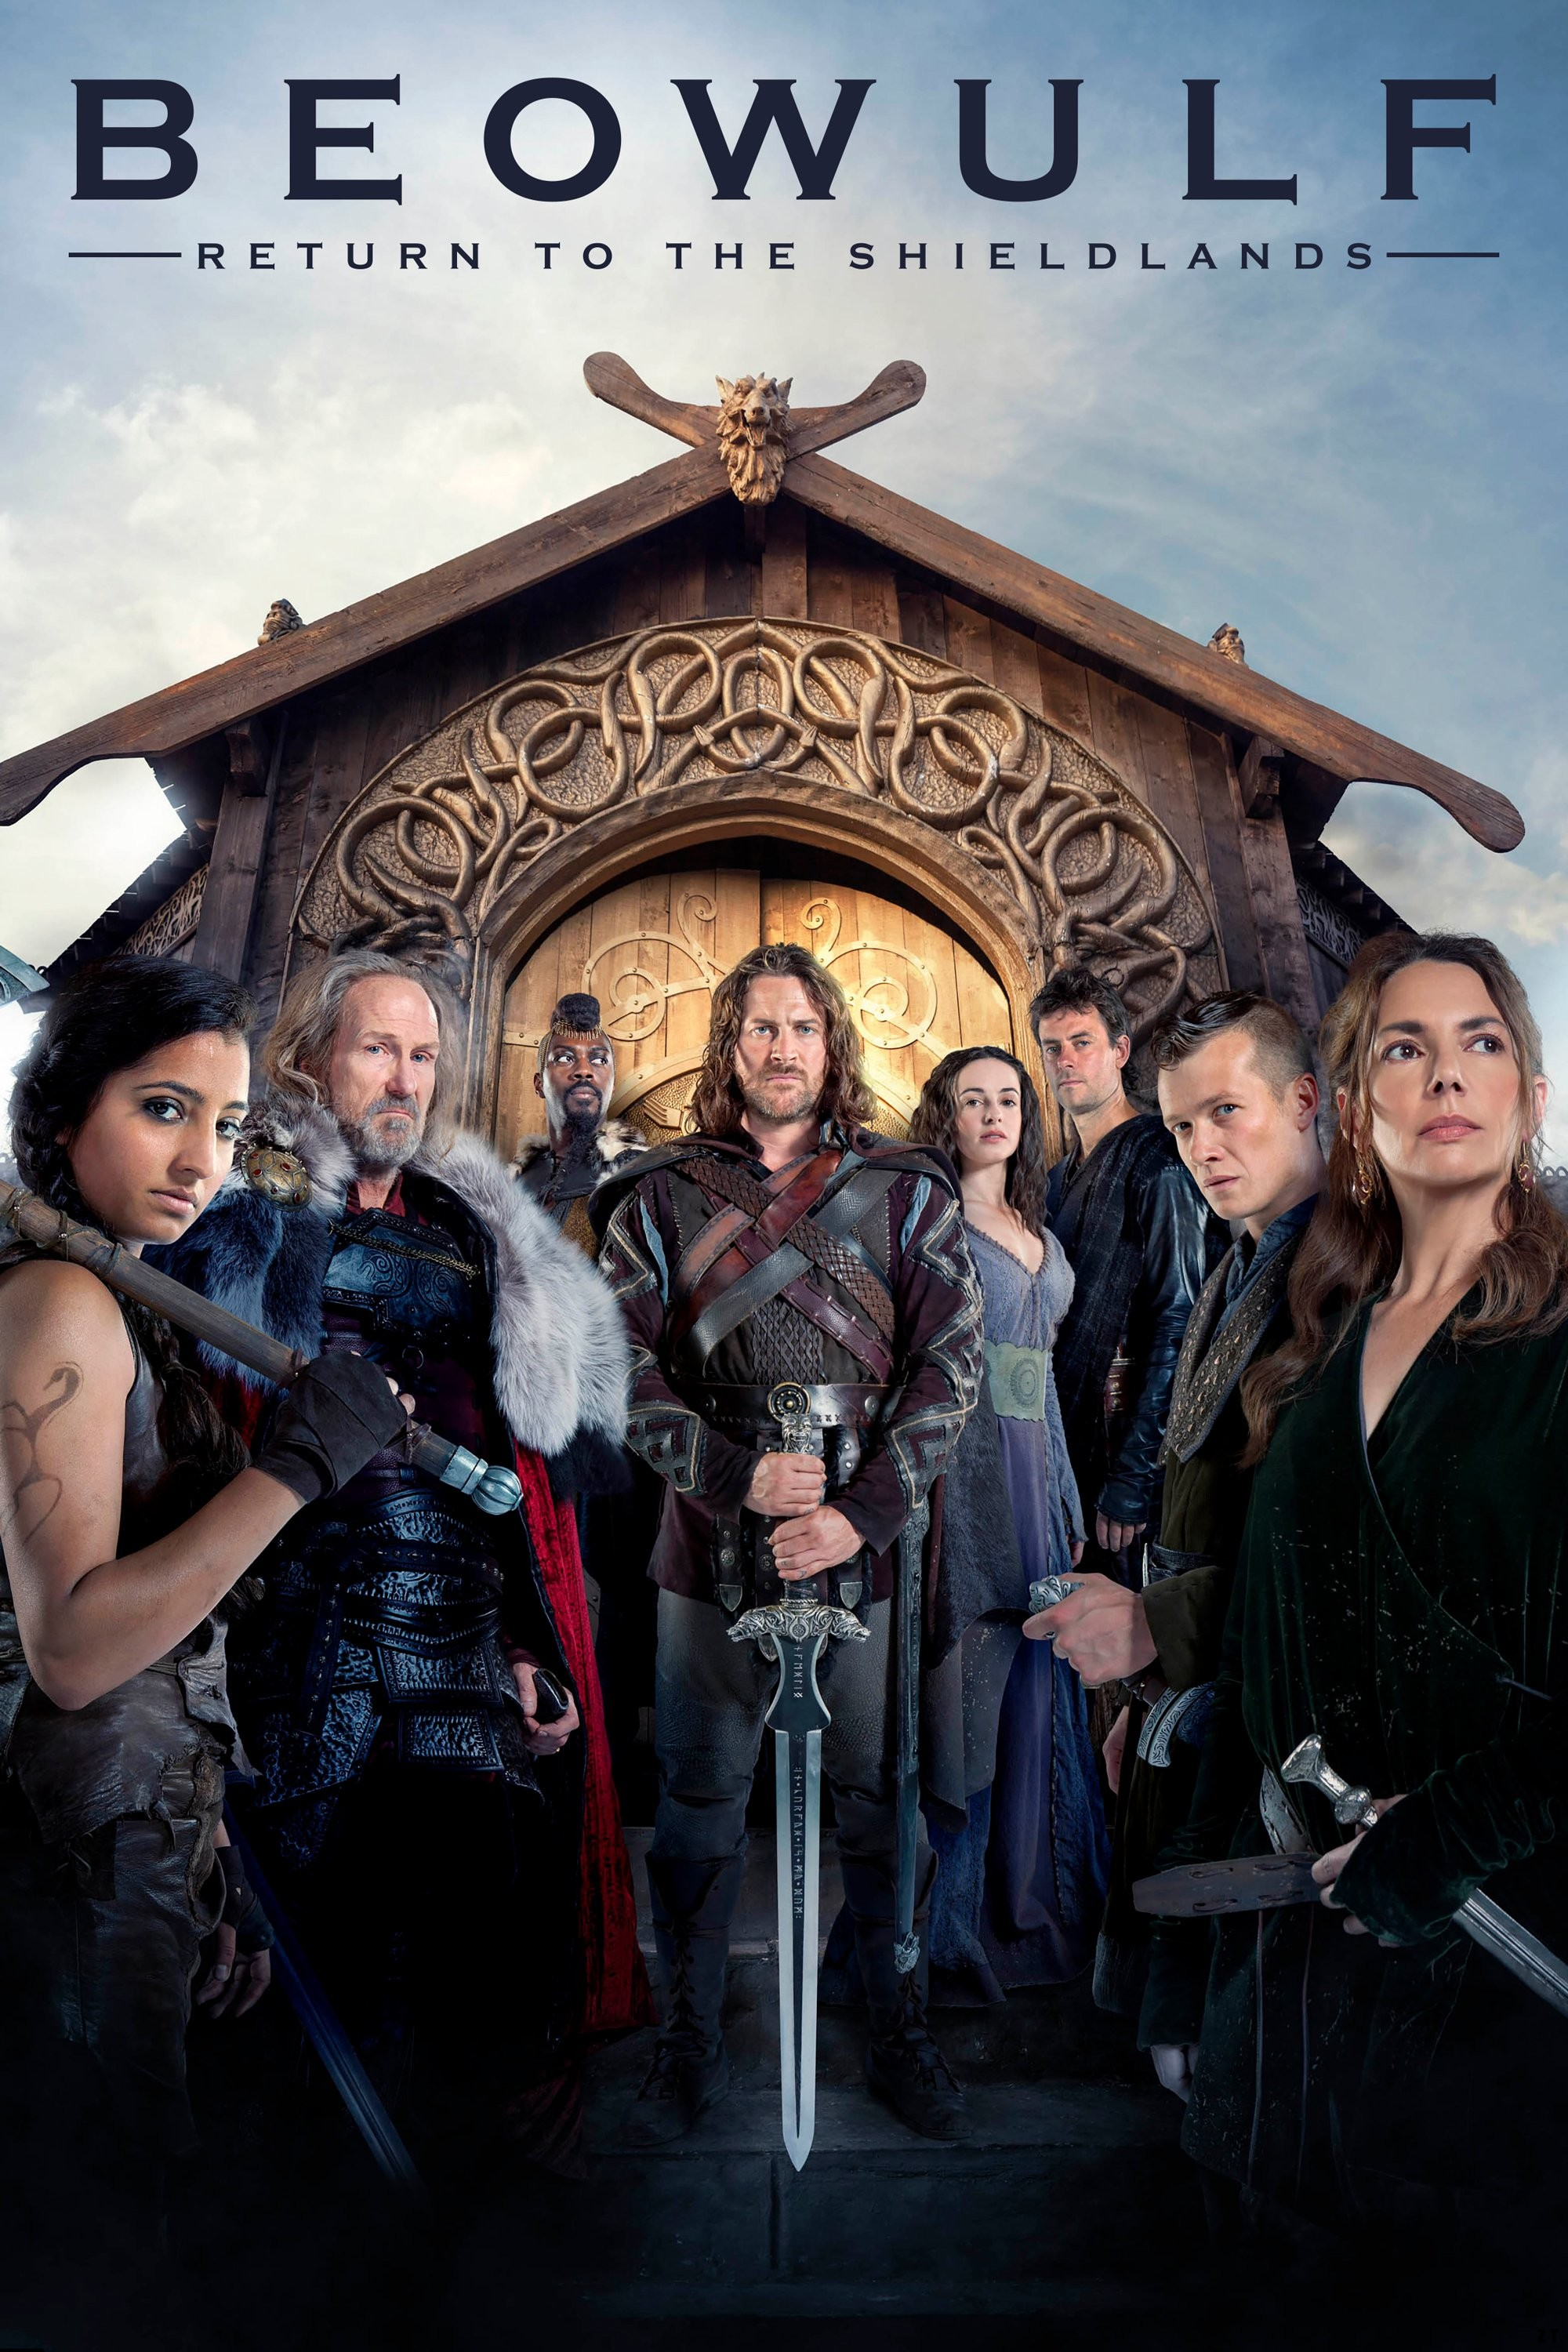 Beowulf : Return to the Shieldlands S01E01 FRENCH HDTV